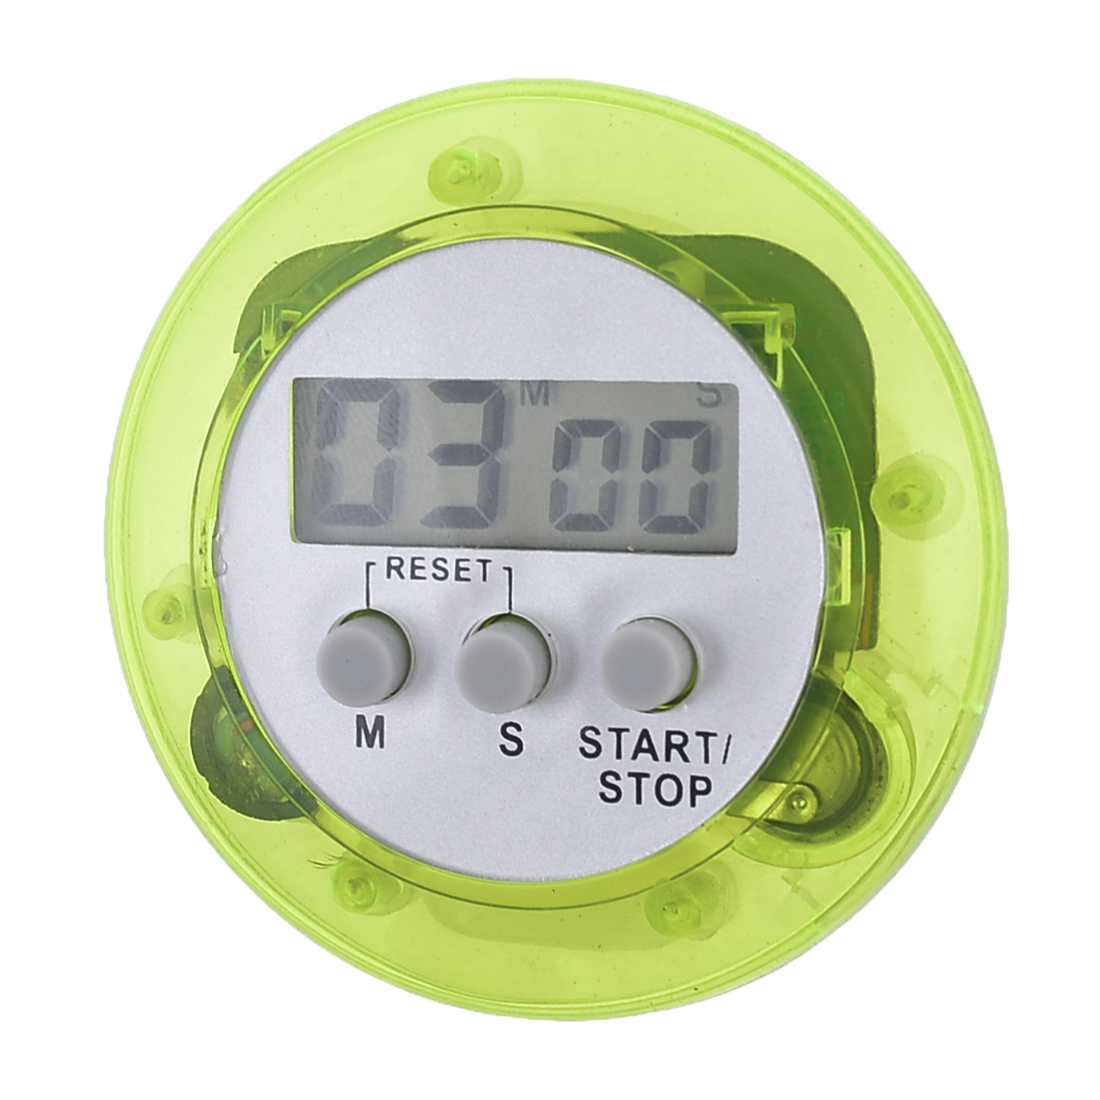 Cooking Rounded Plastic Shell Housing LCD Digital Electronic Count Down up Timer